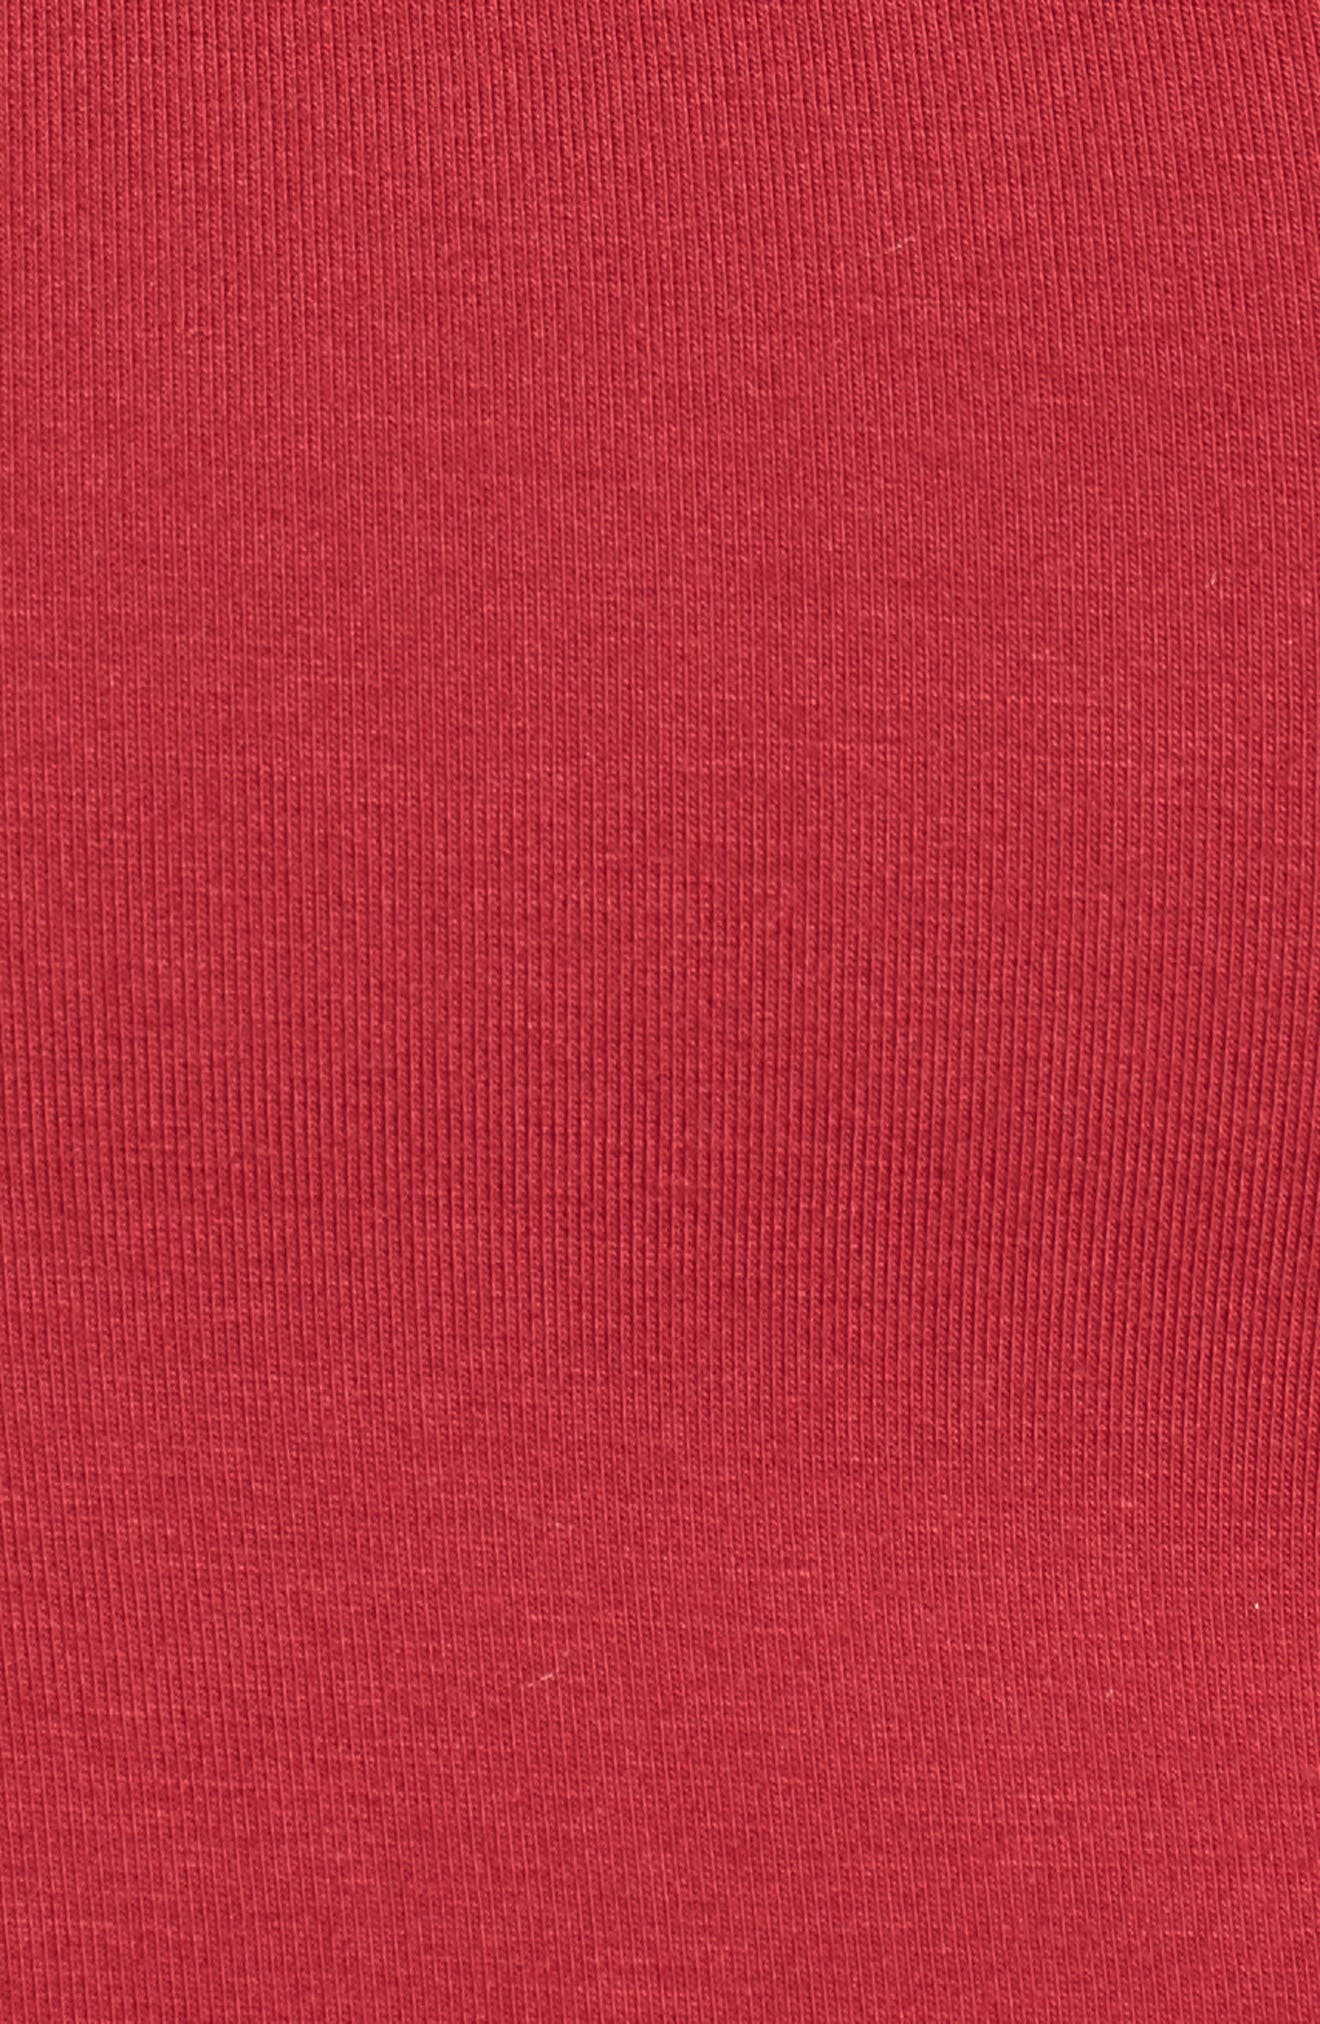 Hills Crop Top,                             Alternate thumbnail 5, color,                             Red